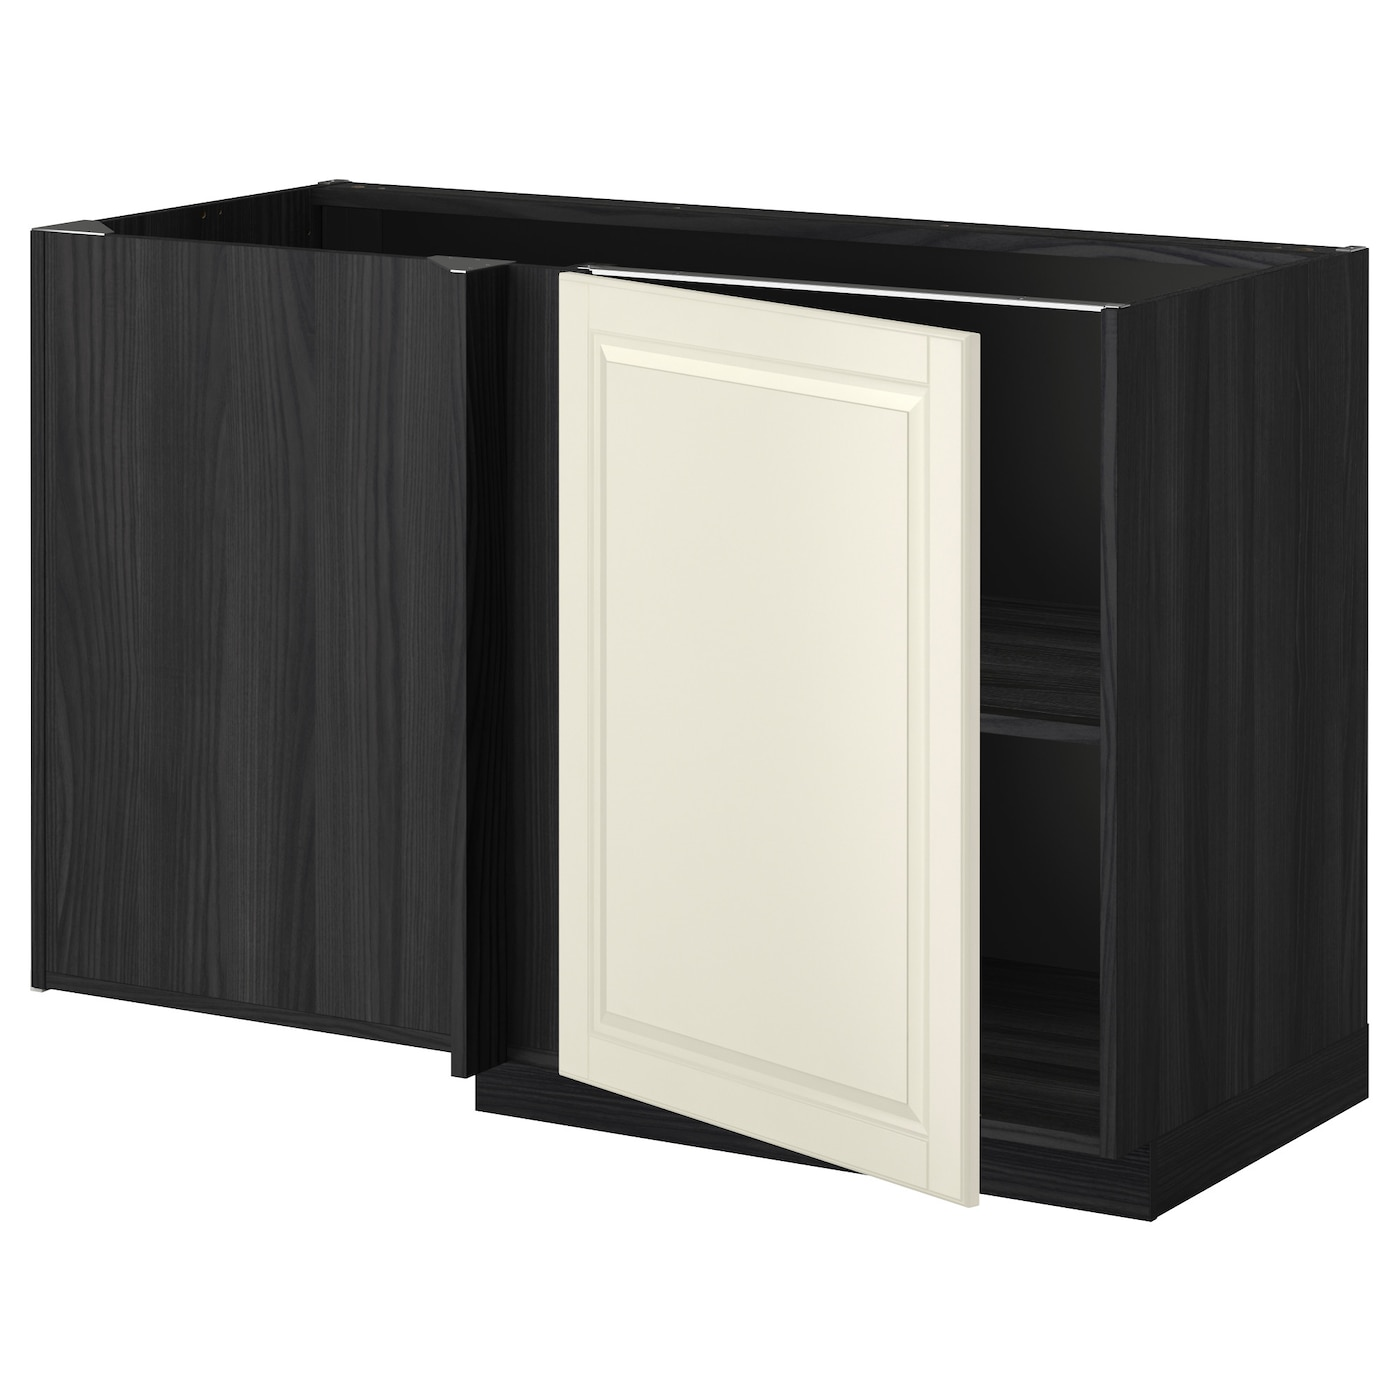 metod corner base cabinet with shelf black bodbyn off. Black Bedroom Furniture Sets. Home Design Ideas